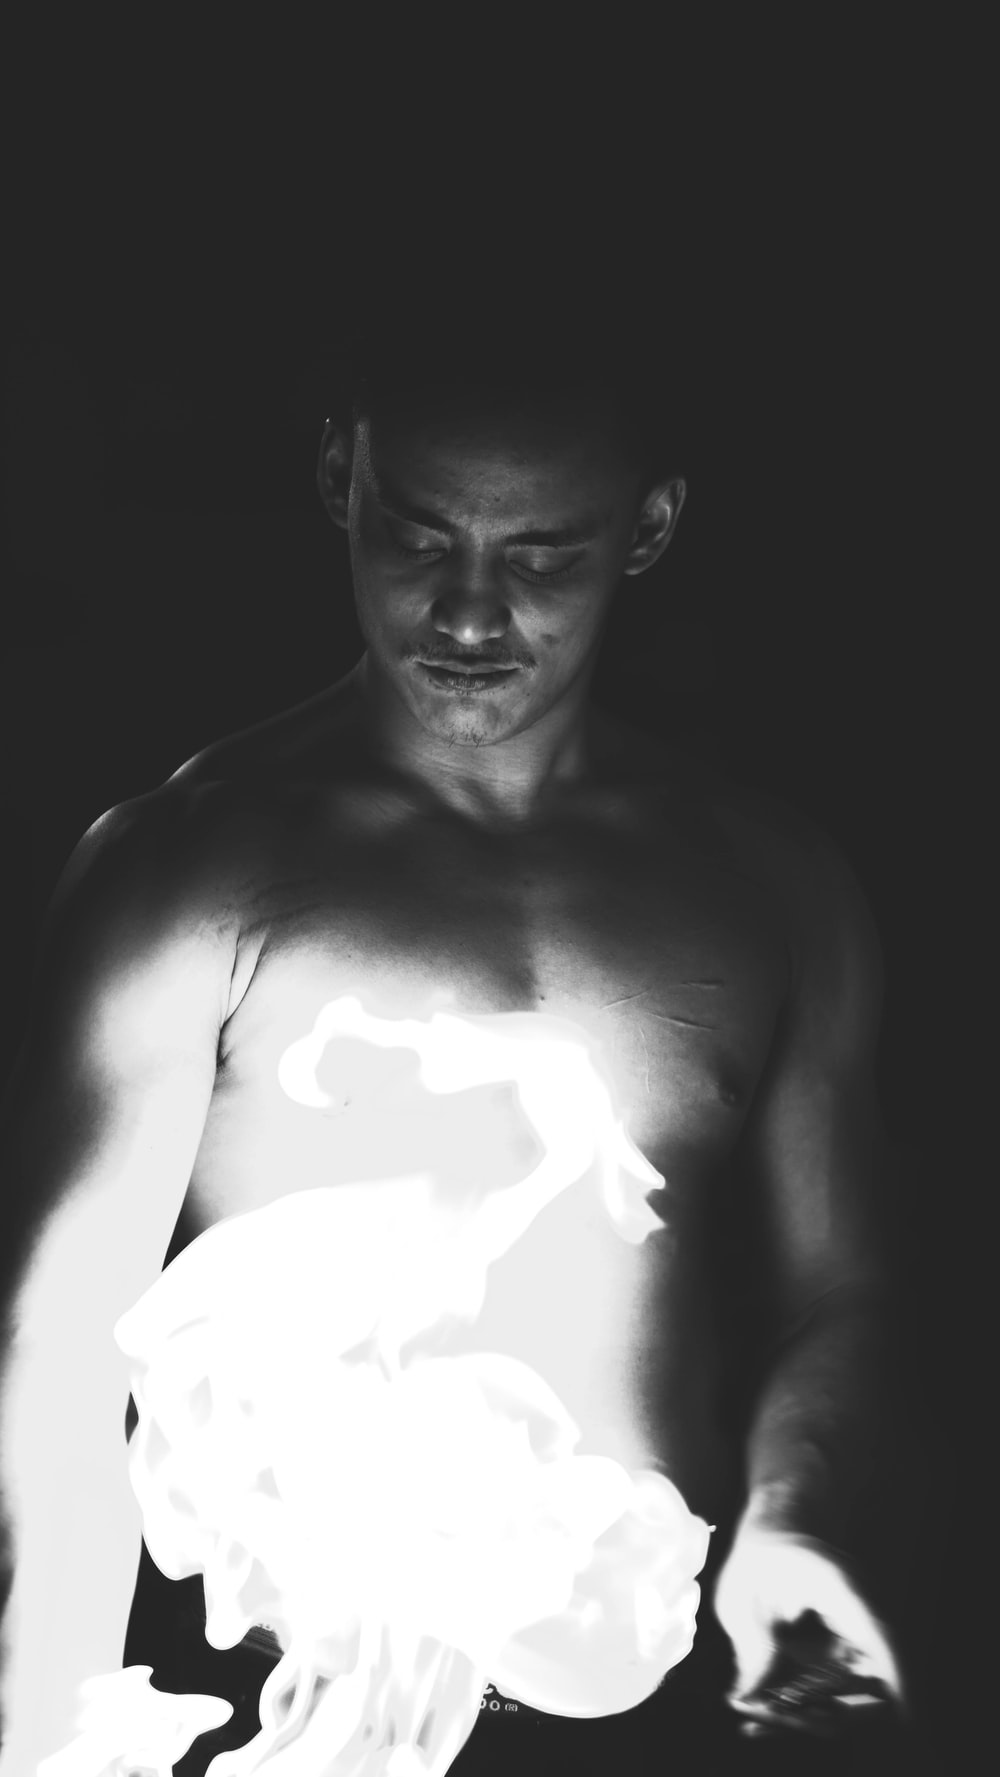 topless man smoking cigarette in grayscale photography